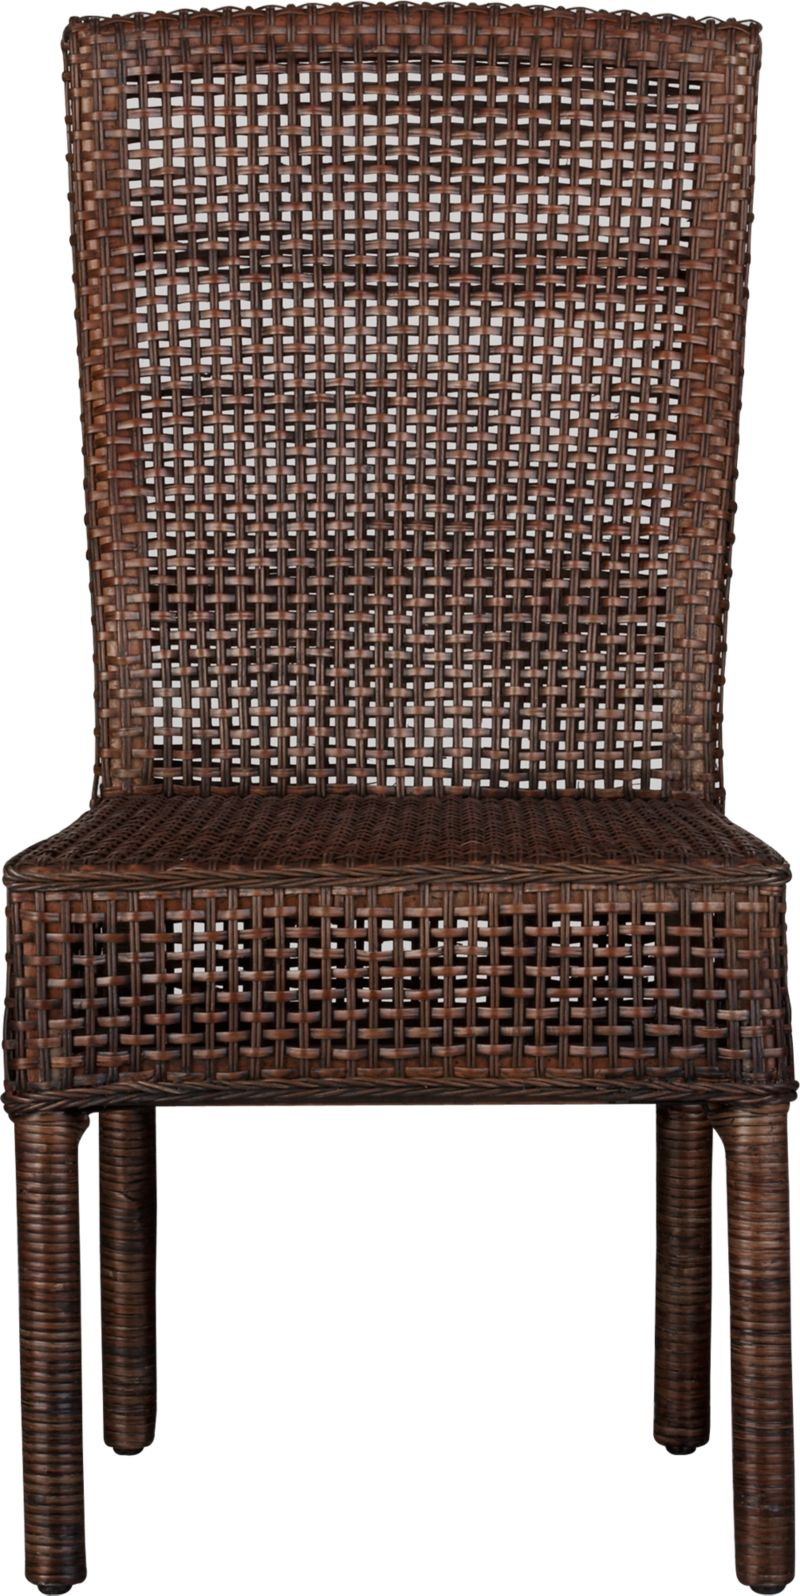 Natural handwoven rattan is woven over a solid mahogany frame and enhanced with warm auburn and black tones in a tropical rendition of the Parsons style chair. Back is curved for comfort.<br /><br /><NEWTAG/><ul><li>Mahogany and rattan</li><li>Auburn stain with black wash</li><li>Clear protective lacquer finish</li><li>Floor protectors</li><li>100% cotton cushion with urethane fill</li><li>Dry clean</li><li>Made in Indonesia</li></ul>